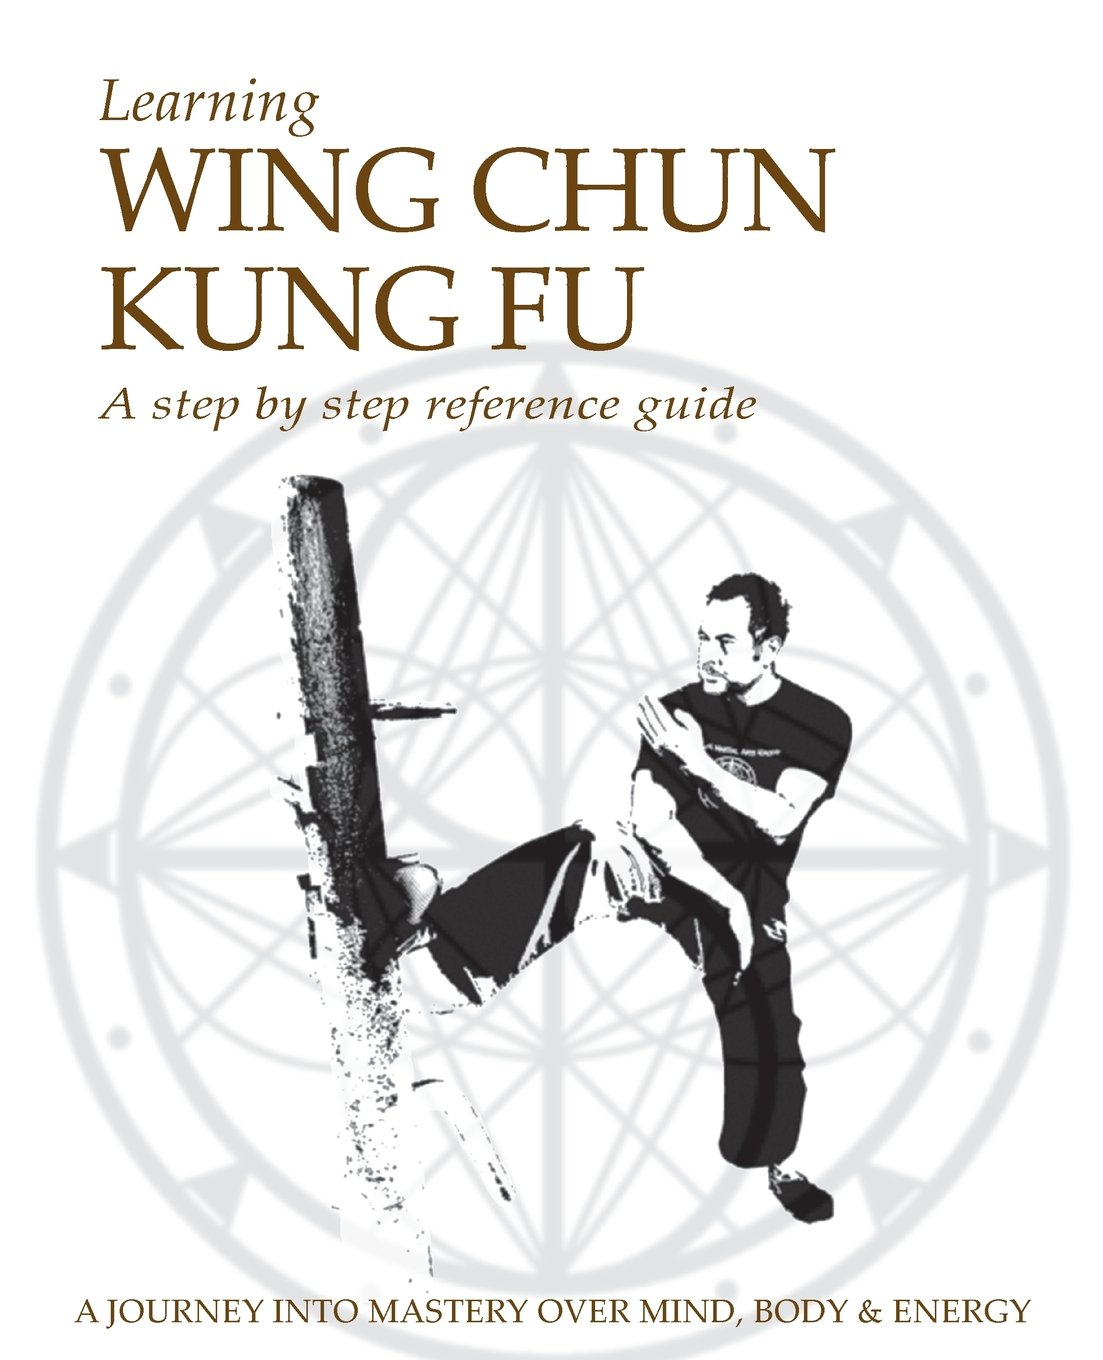 Learning Wing Chun Kung Fu Jason G Kokkorakis 9781845495879